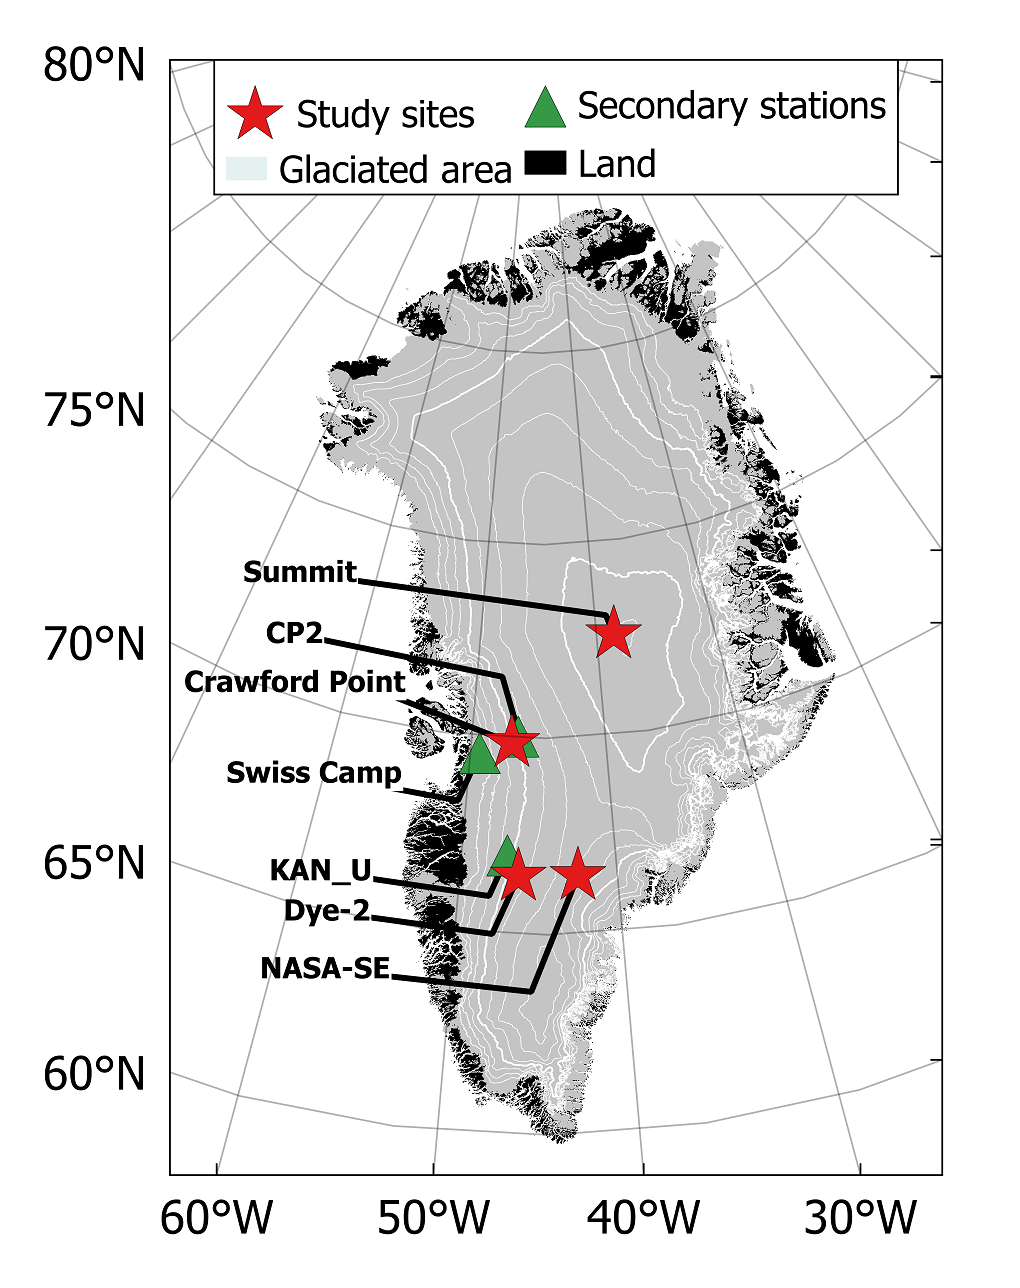 Communicating Science Glacier Bytes Displaying 20gt Images For Solution Example Figure 1 Locations Of The Four Study Sites On Greenland Ice Sheets High Elevation Firn Plateau